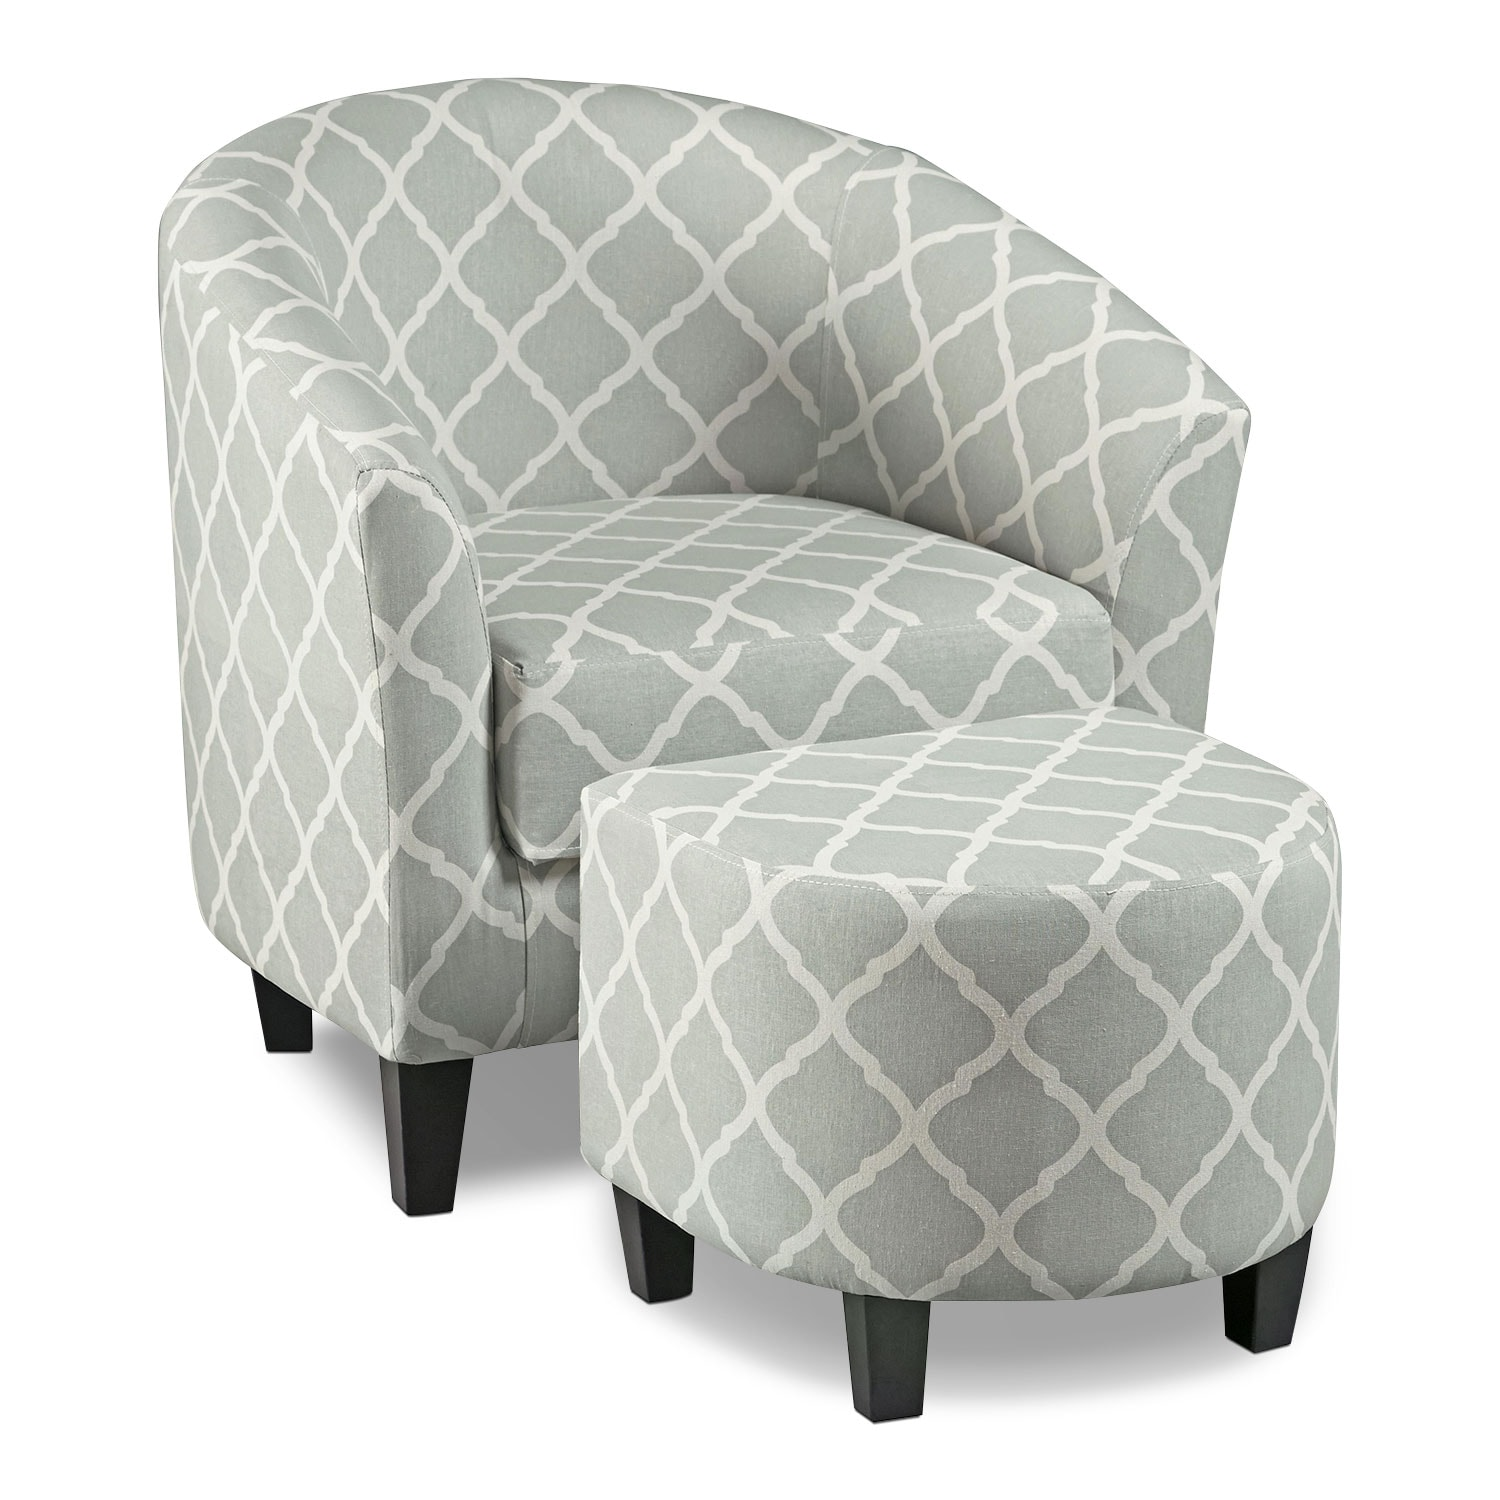 Sperrie Accent Chair With Ottoman